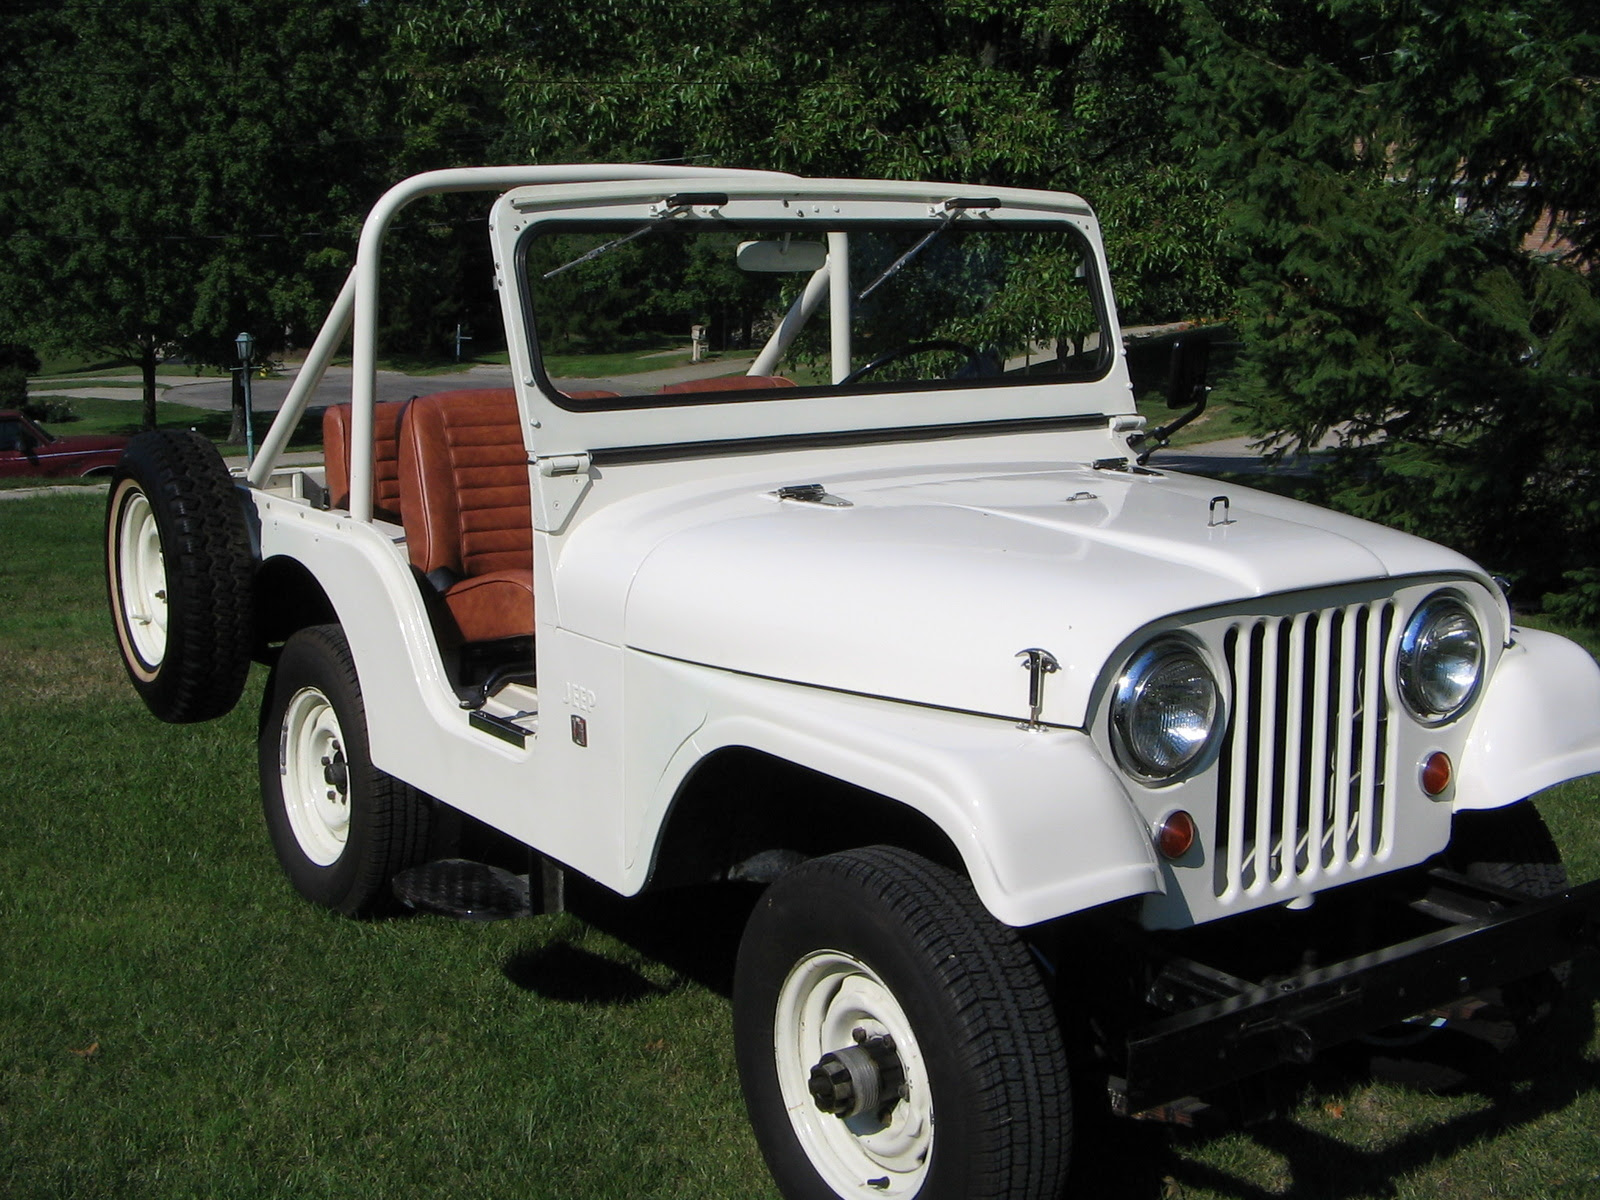 1969 Jeep Cj 5 Information And Photos Momentcar